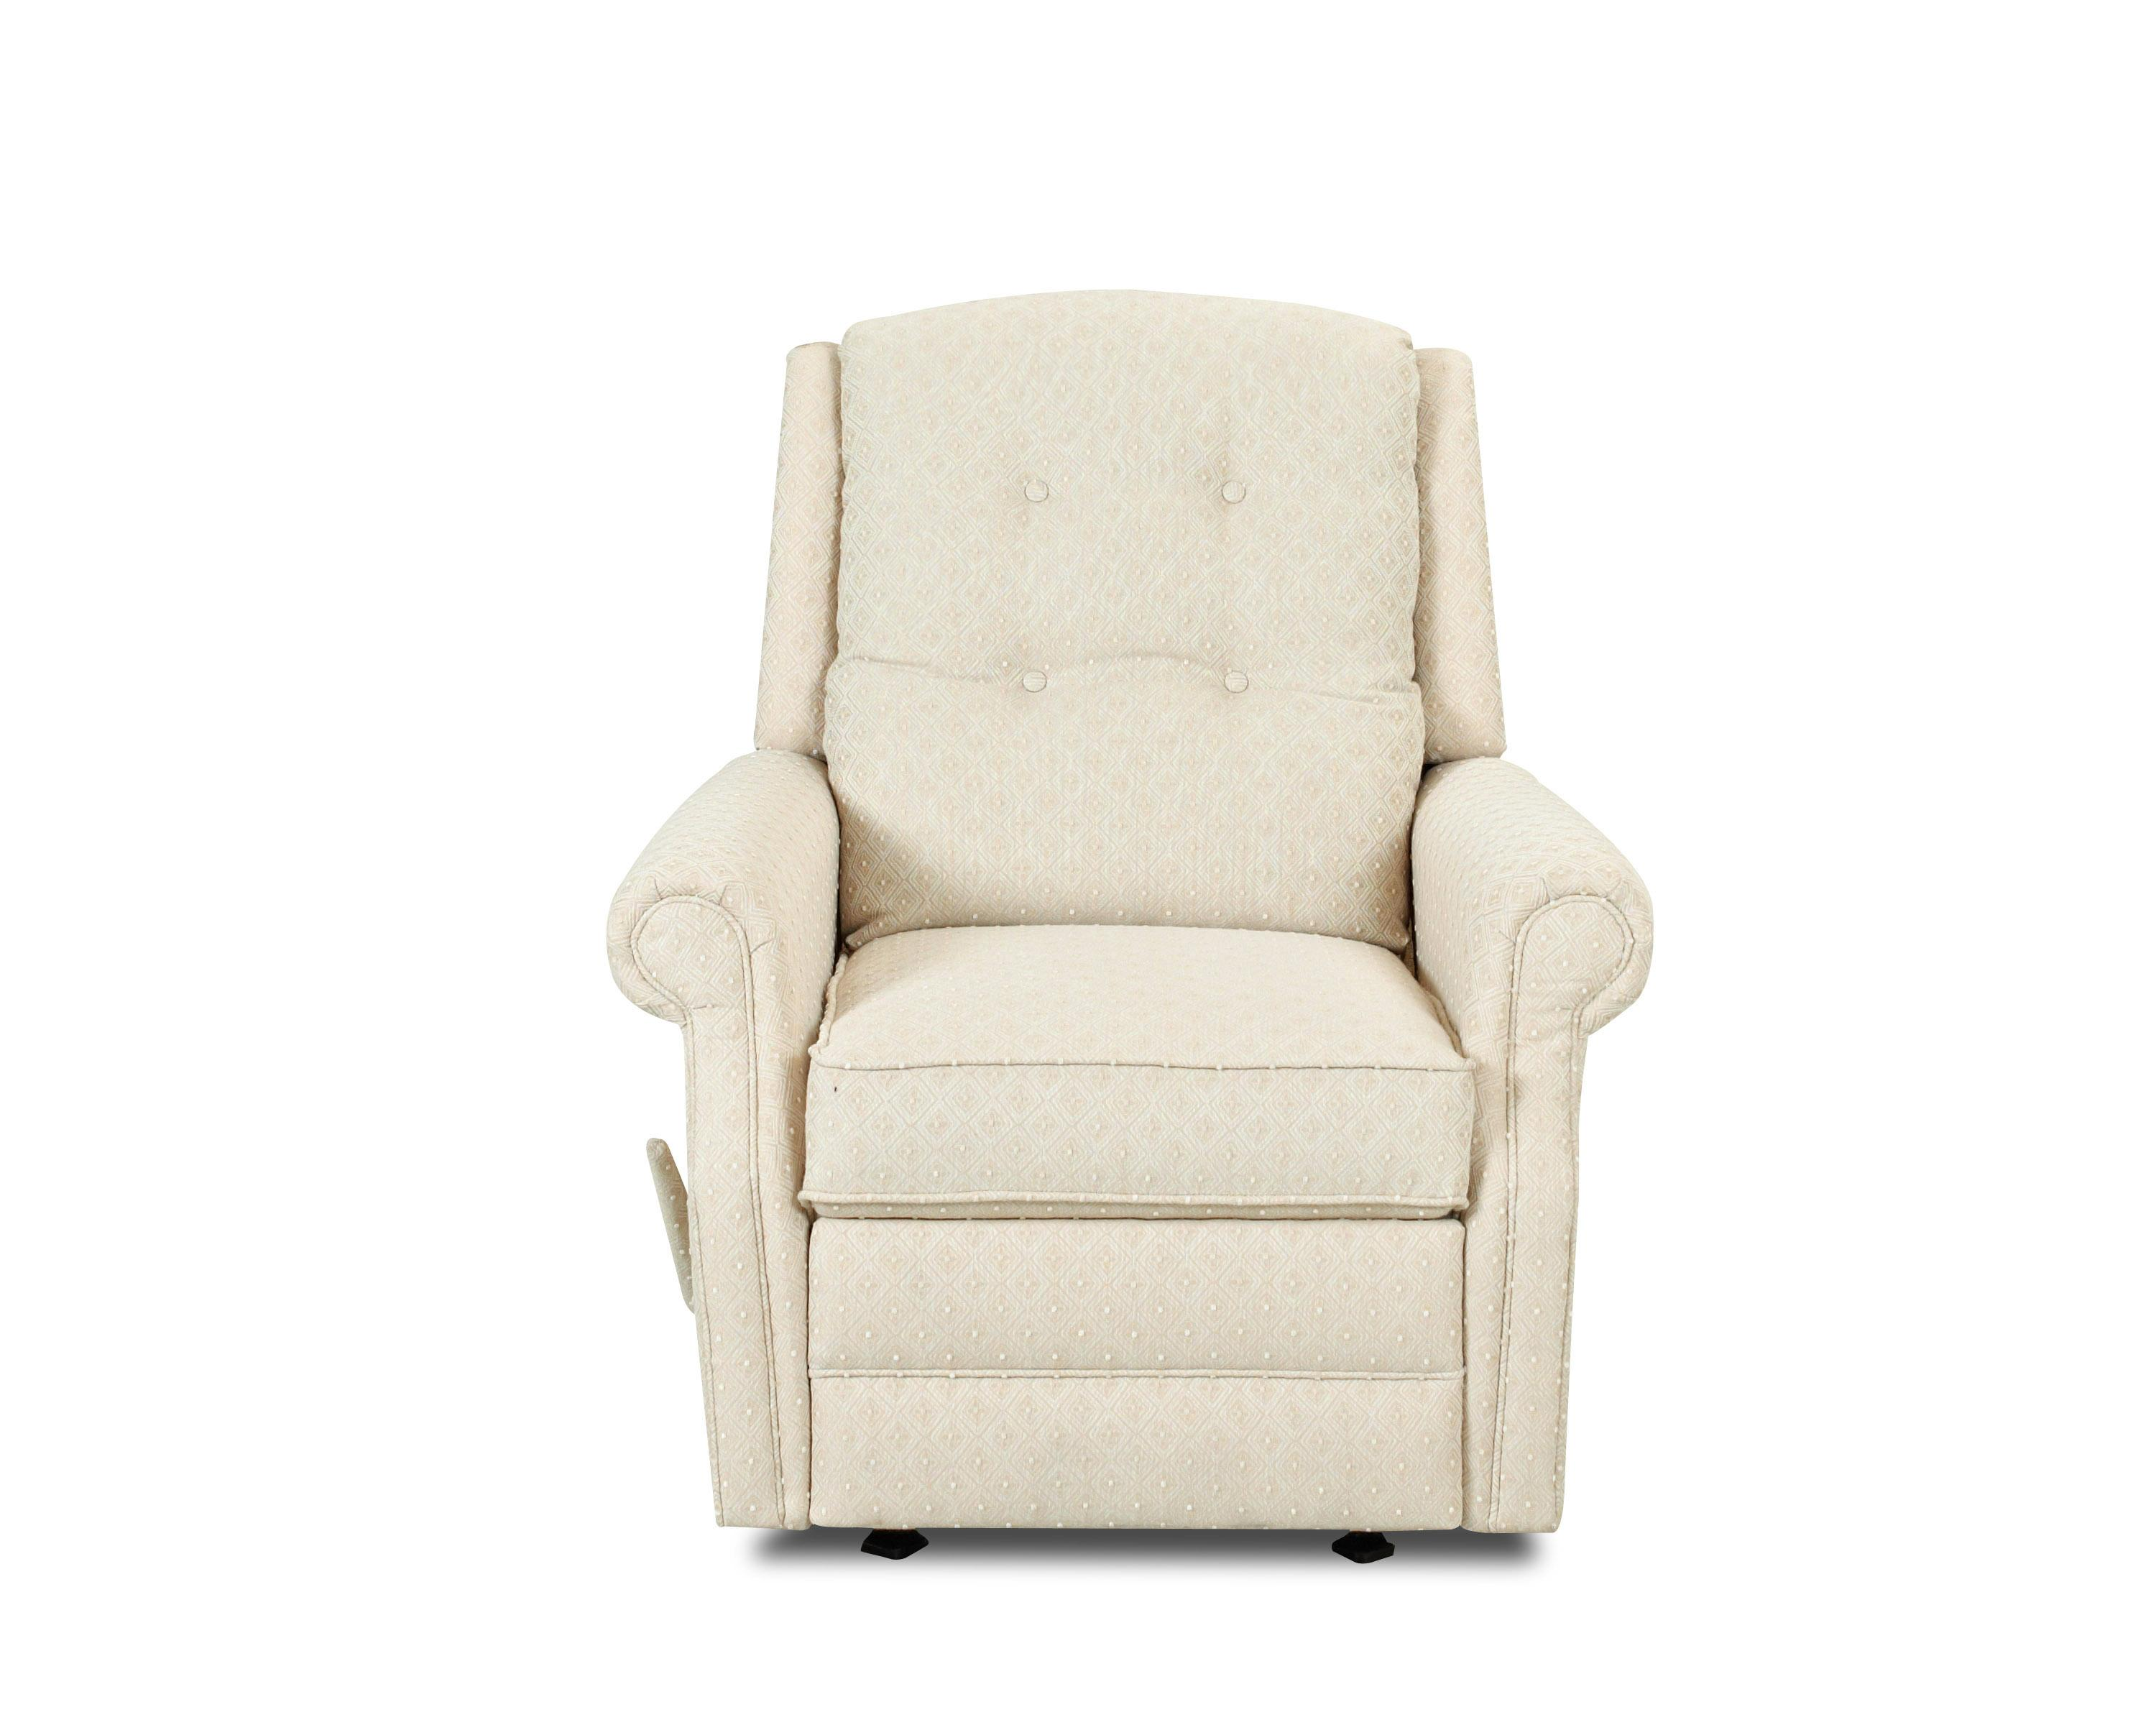 Sand Key Manual Gliding Reclining Chair  by Klaussner at Johnny Janosik